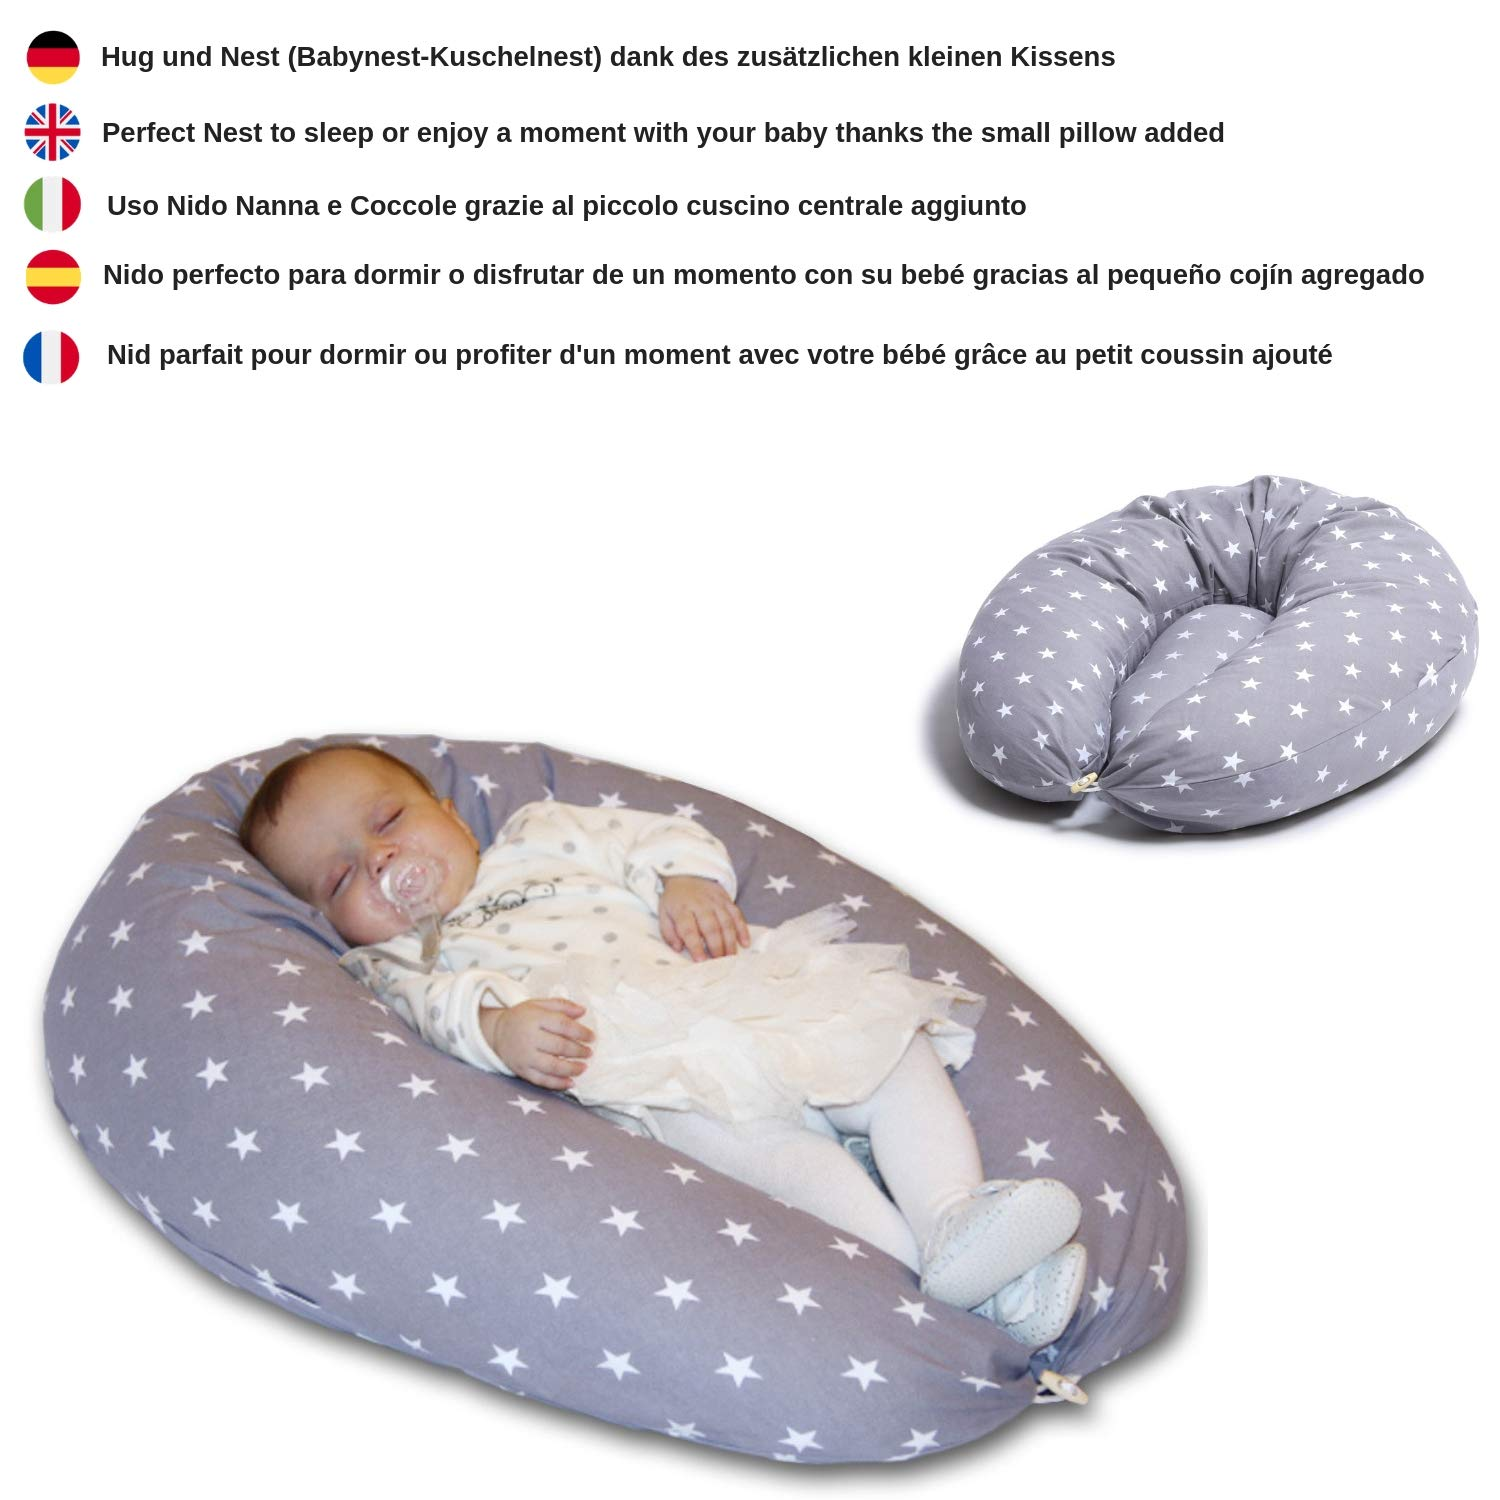 Inner Filling Polyester Fiber Nursing Pillow Maternity Pillow /& Pregnancy Pillow for Breastfeeding Baby and Full Body for Sleeping Large XXL Made in EU 100/% Cotton Pillow Case